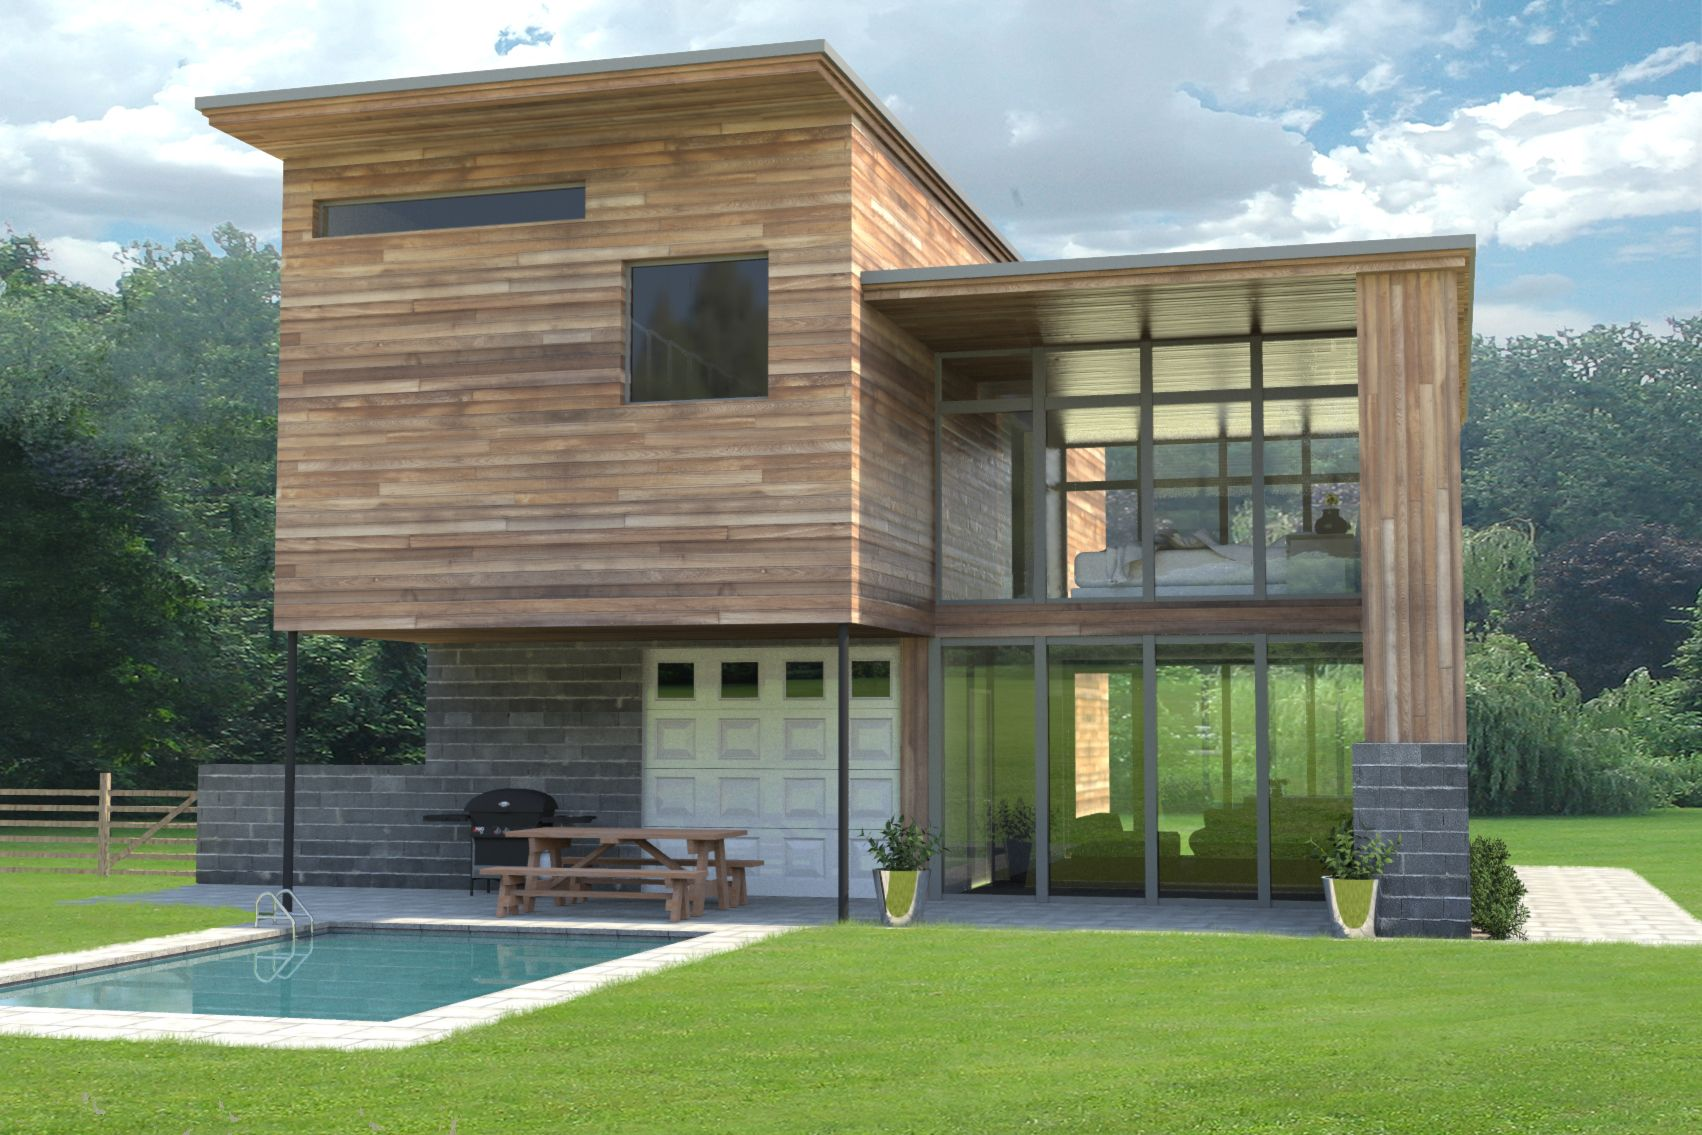 1000+ images about Modern Wood Siding on Pinterest - ^